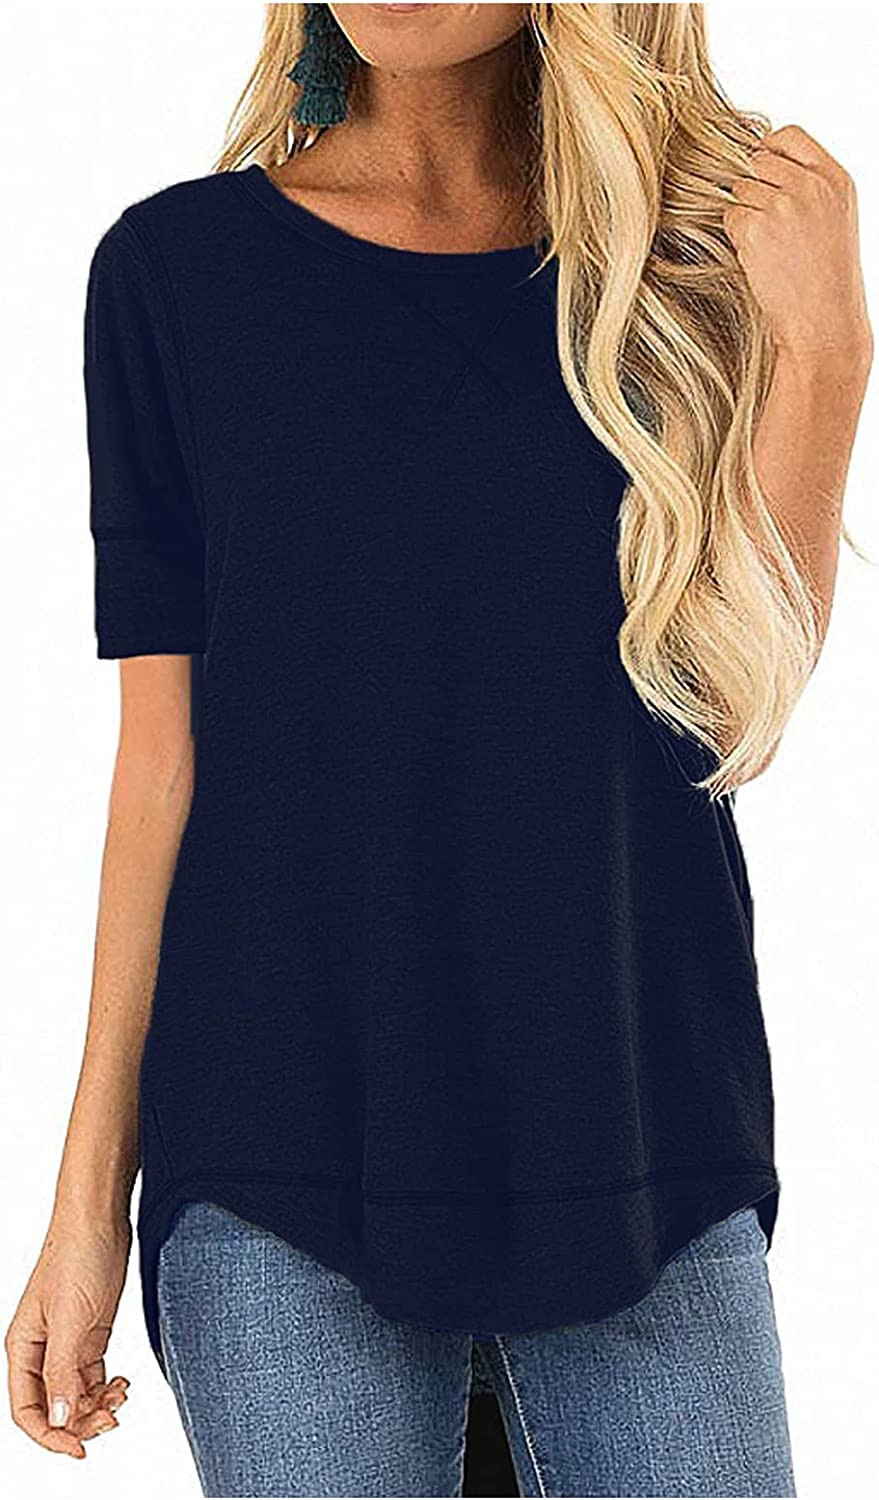 YunYou Womens Short Sleeve T Outlet ☆ Free Shipping Shirts Tops Tunic Co Fixed price for sale Loose Crewneck